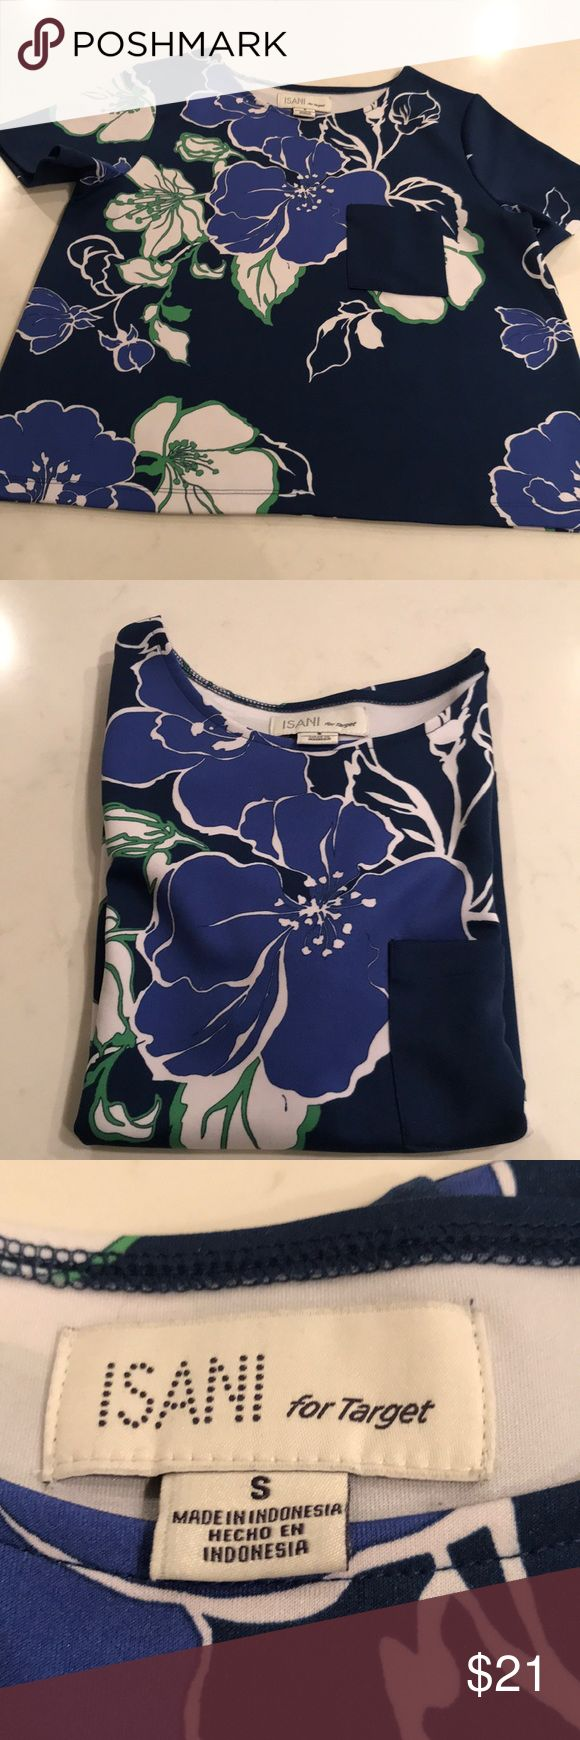 """Isani for Target top Isani for Target Women's Floral over sized boxy  slight a-line Scuba Top with single pocket and short sleeves. Chest-18.5 """" Bottom across 21"""" Length 21"""" All measurements are approximate isani for target Tops Tees - Short Sleeve"""